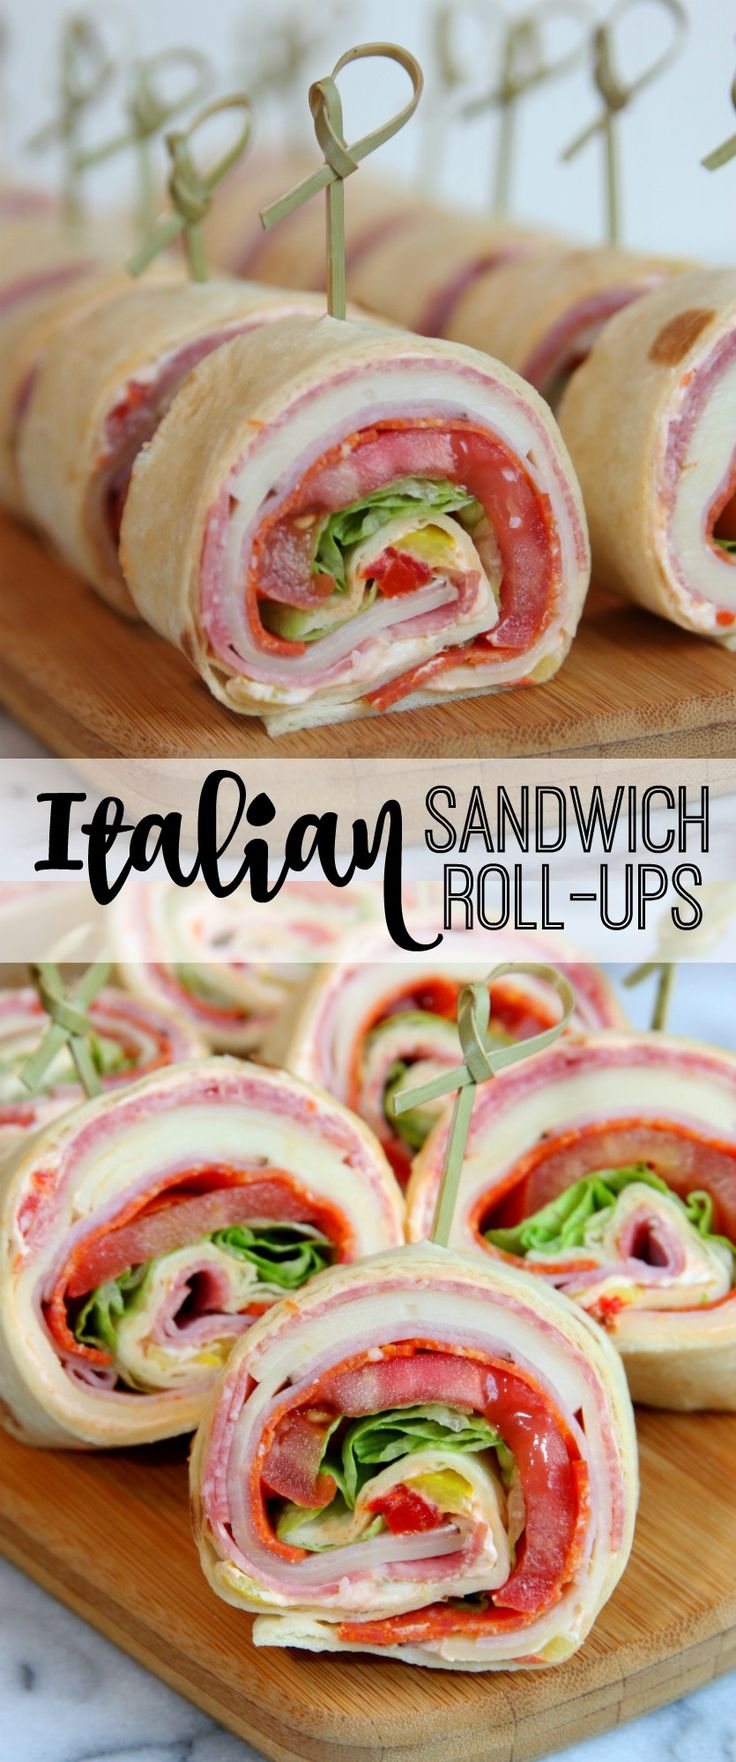 #ad Italian Sandwich Roll-Ups #delicious #summerentertaining: DELICIOUS (Cook torttillas over fire 1st!)